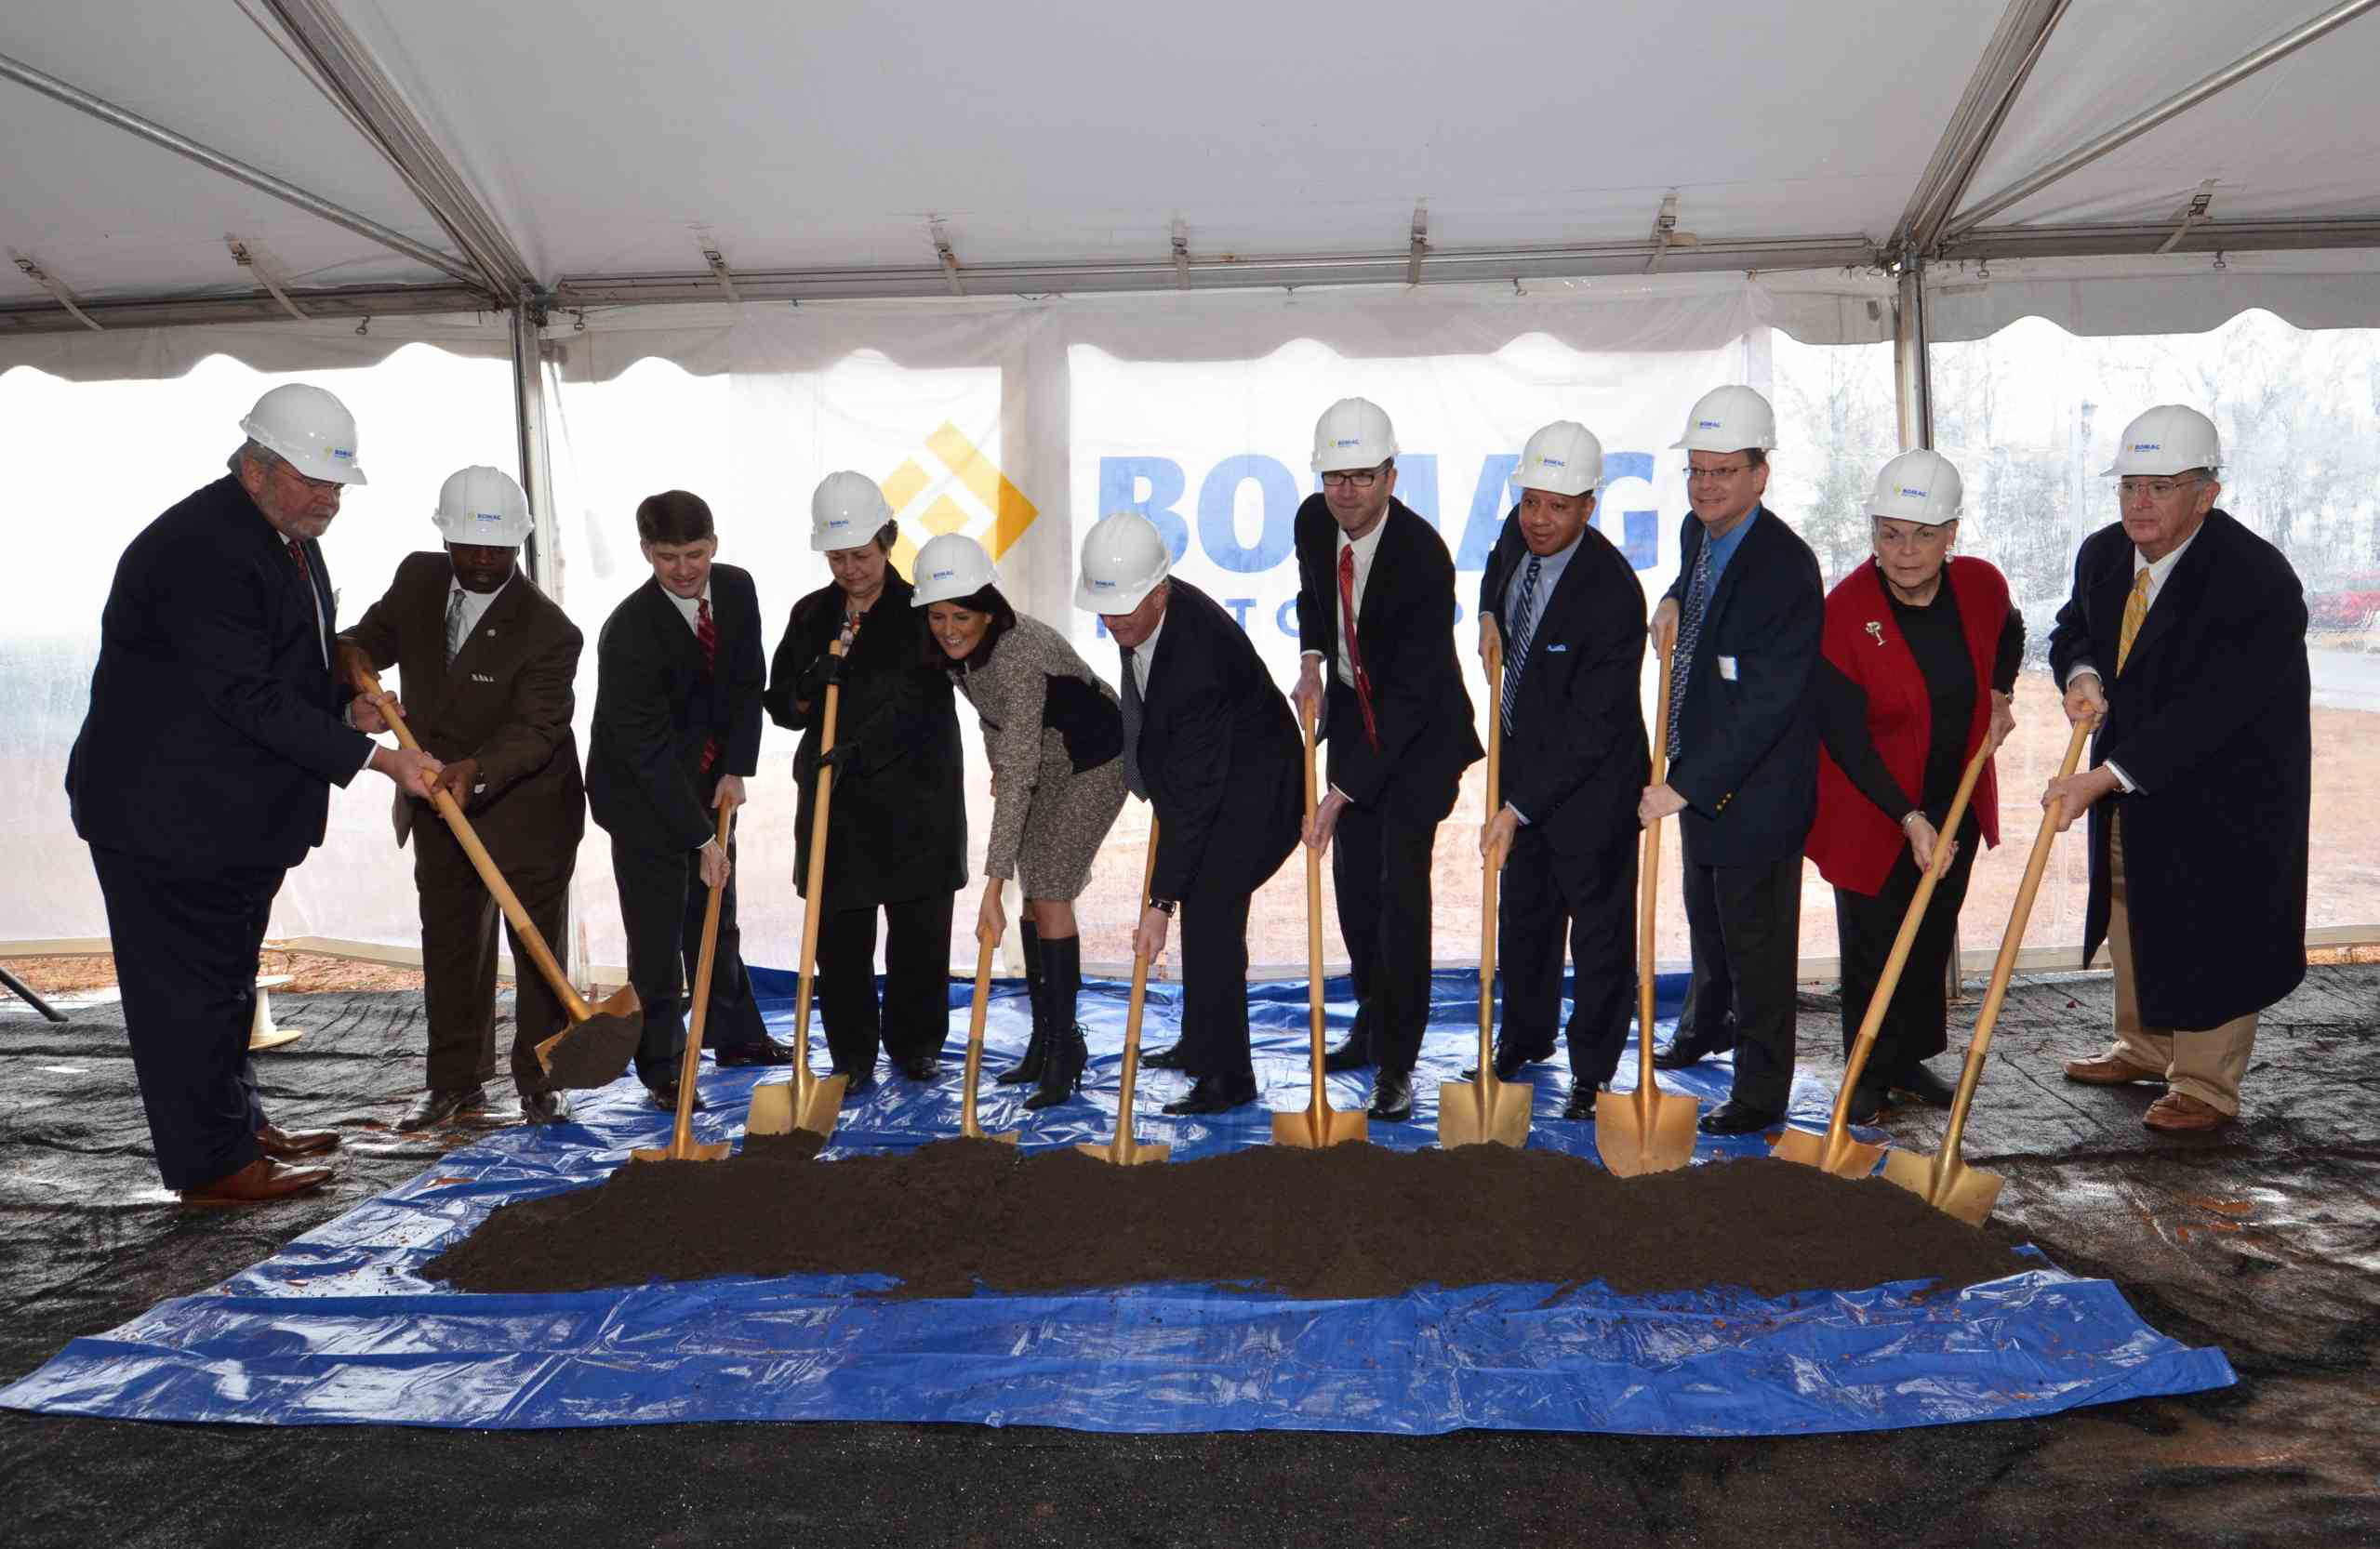 From L to R: Mike Briggs, Milton Pope, Philip Land, Carolyn Robinson, Gov. Nikki Haley, Bomag Americas President Walter Link, Rob Mueckler, Dwayne Perry, Dave Dennison, Mary Lynn Kinley, David Brown